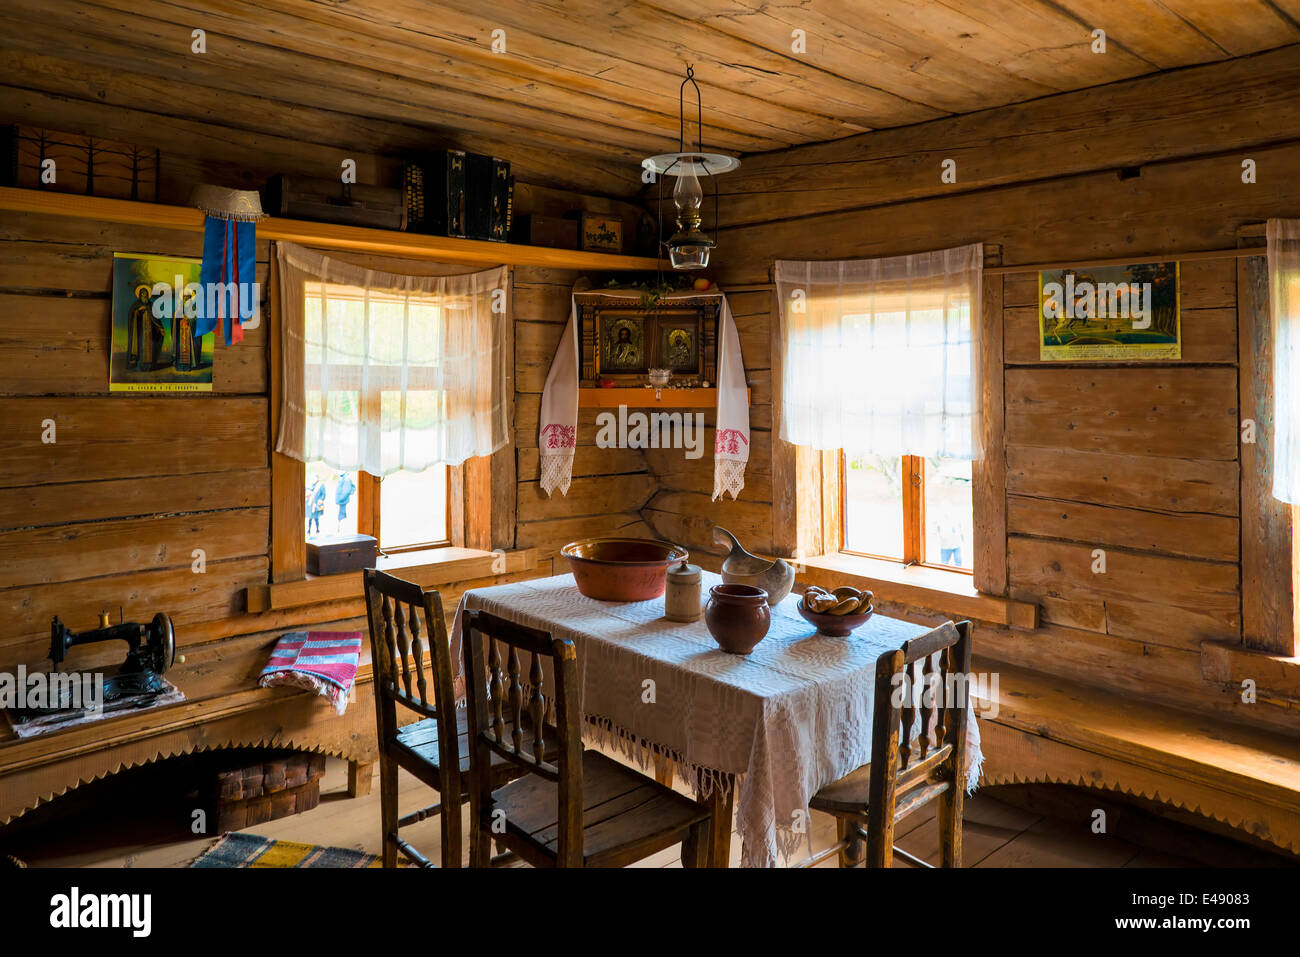 russian interior poor hut in the middle ages stock photo royalty